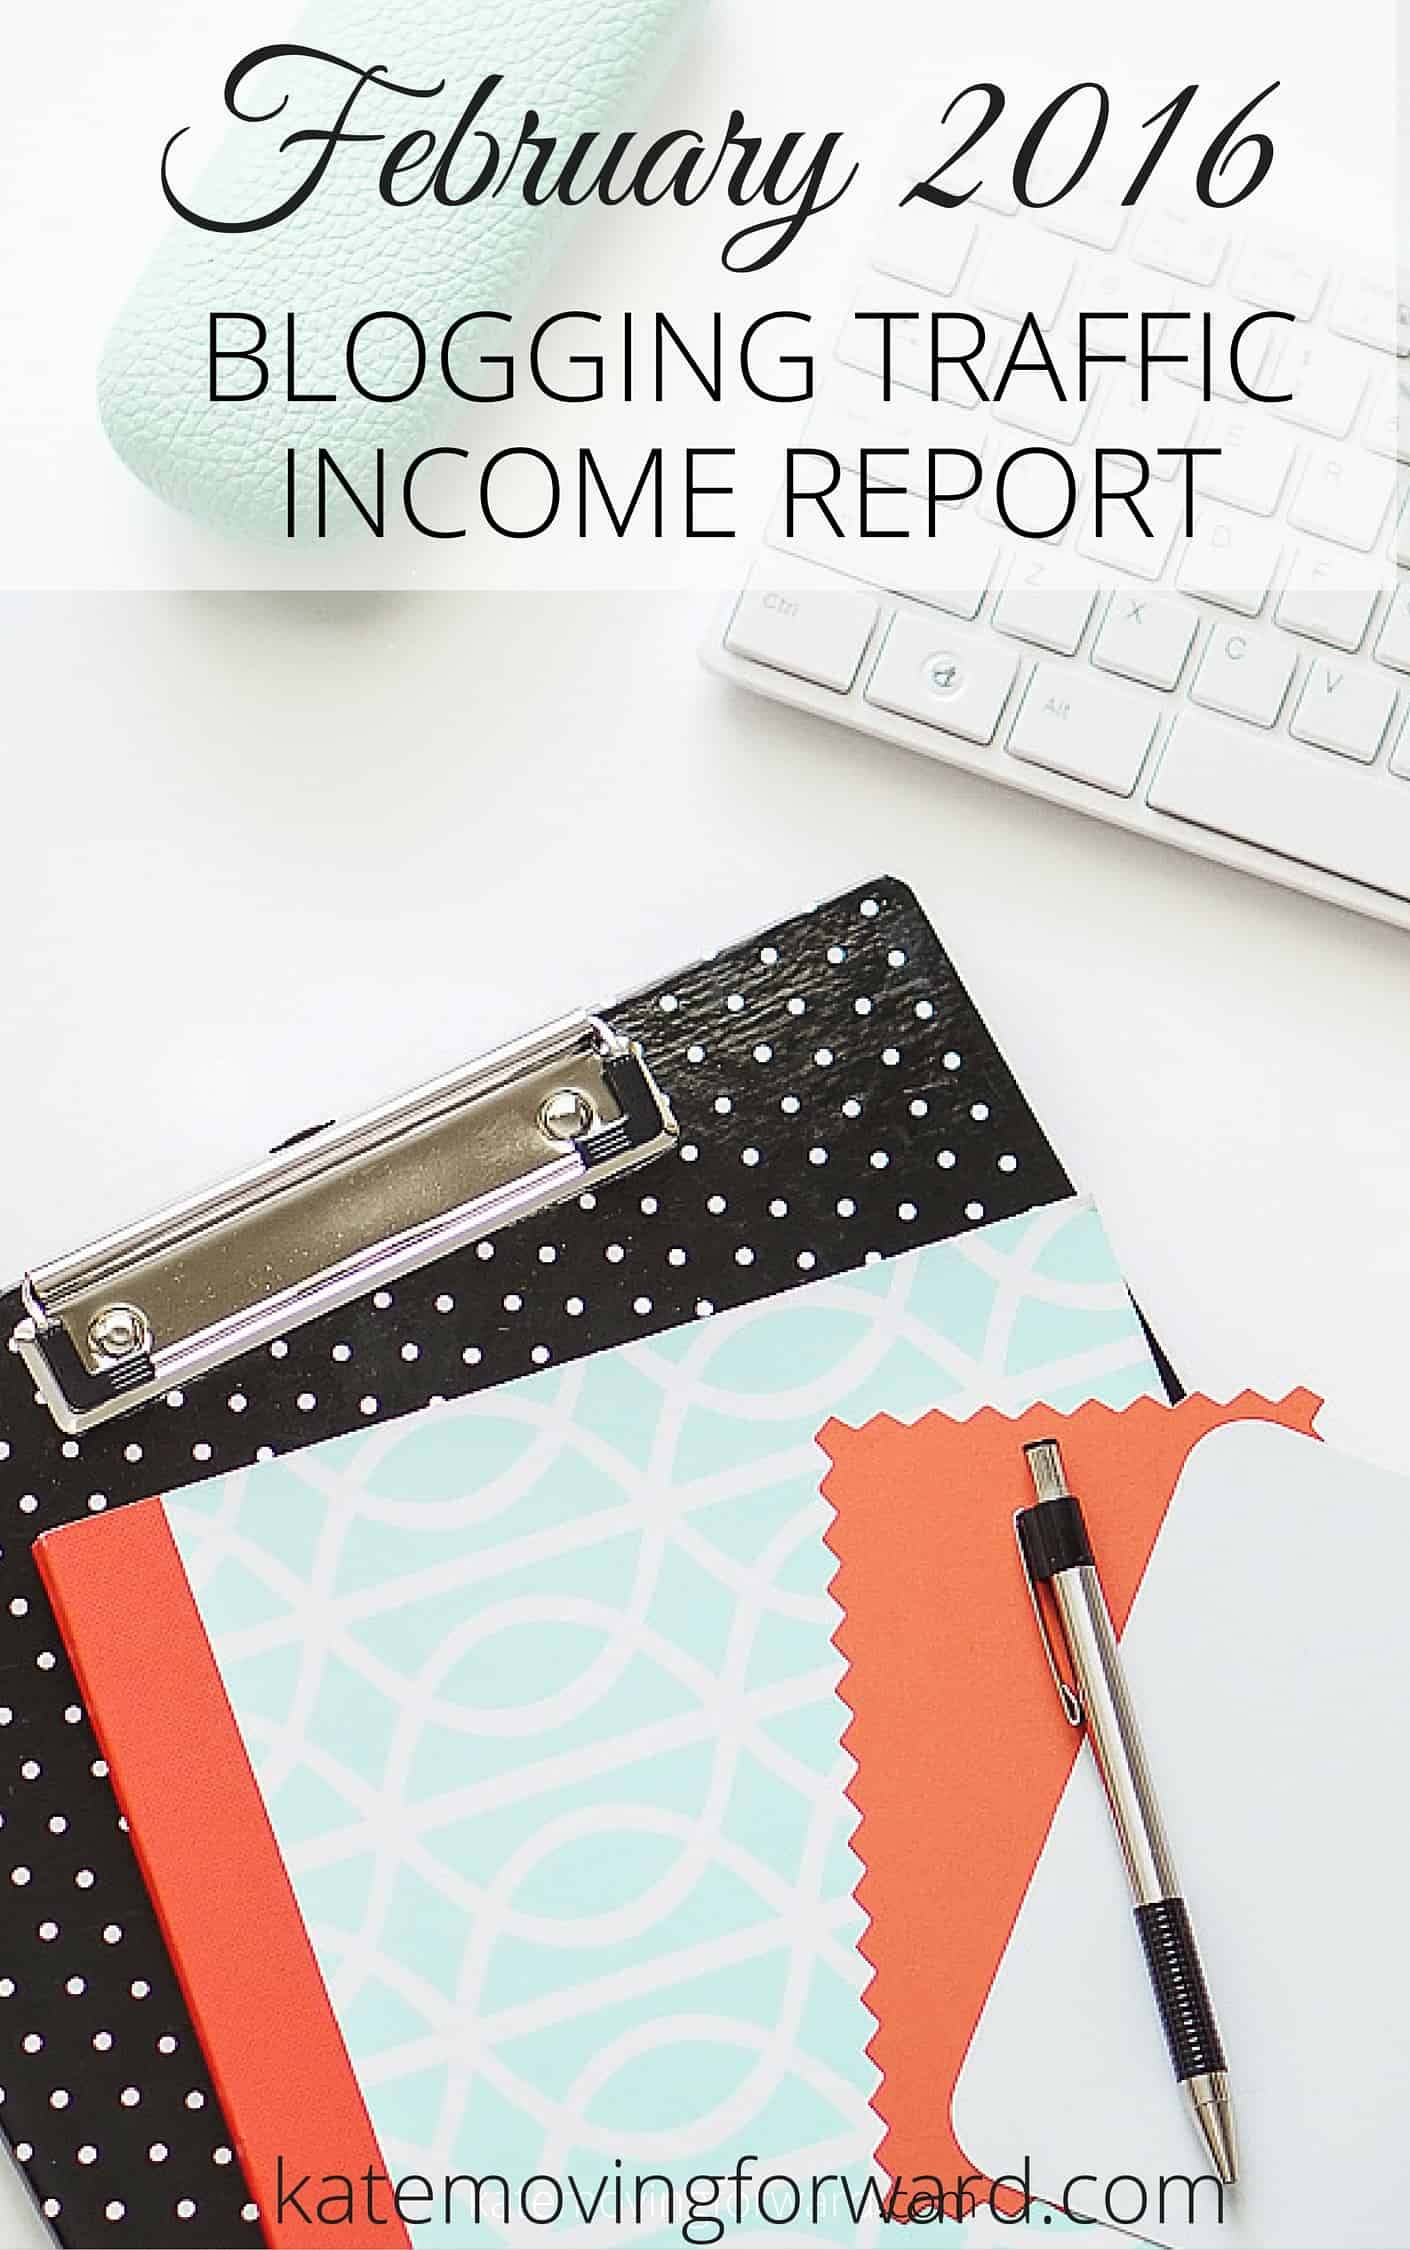 February Blog Income & Traffic Report - Get a behind the scenes look at a small blog making money.